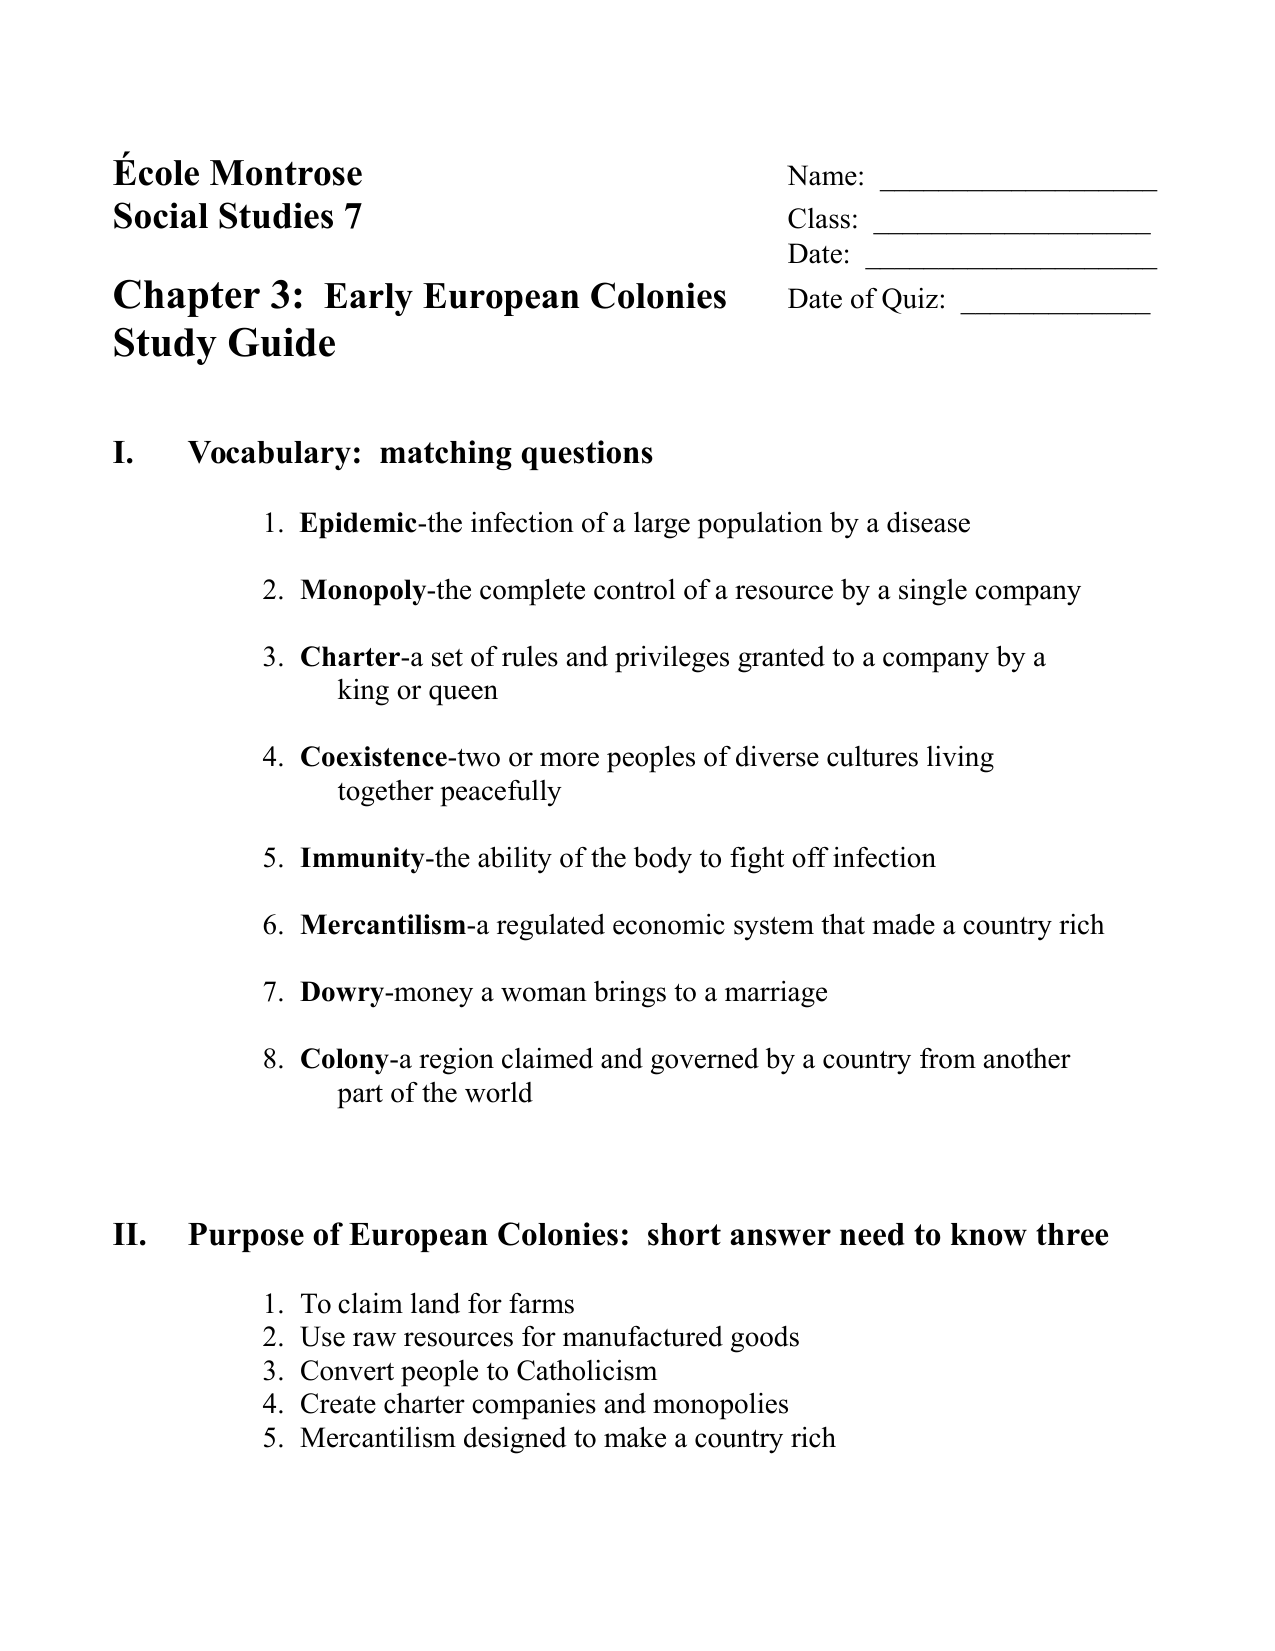 Our canada textbook grade 7 chapter 8 pdf